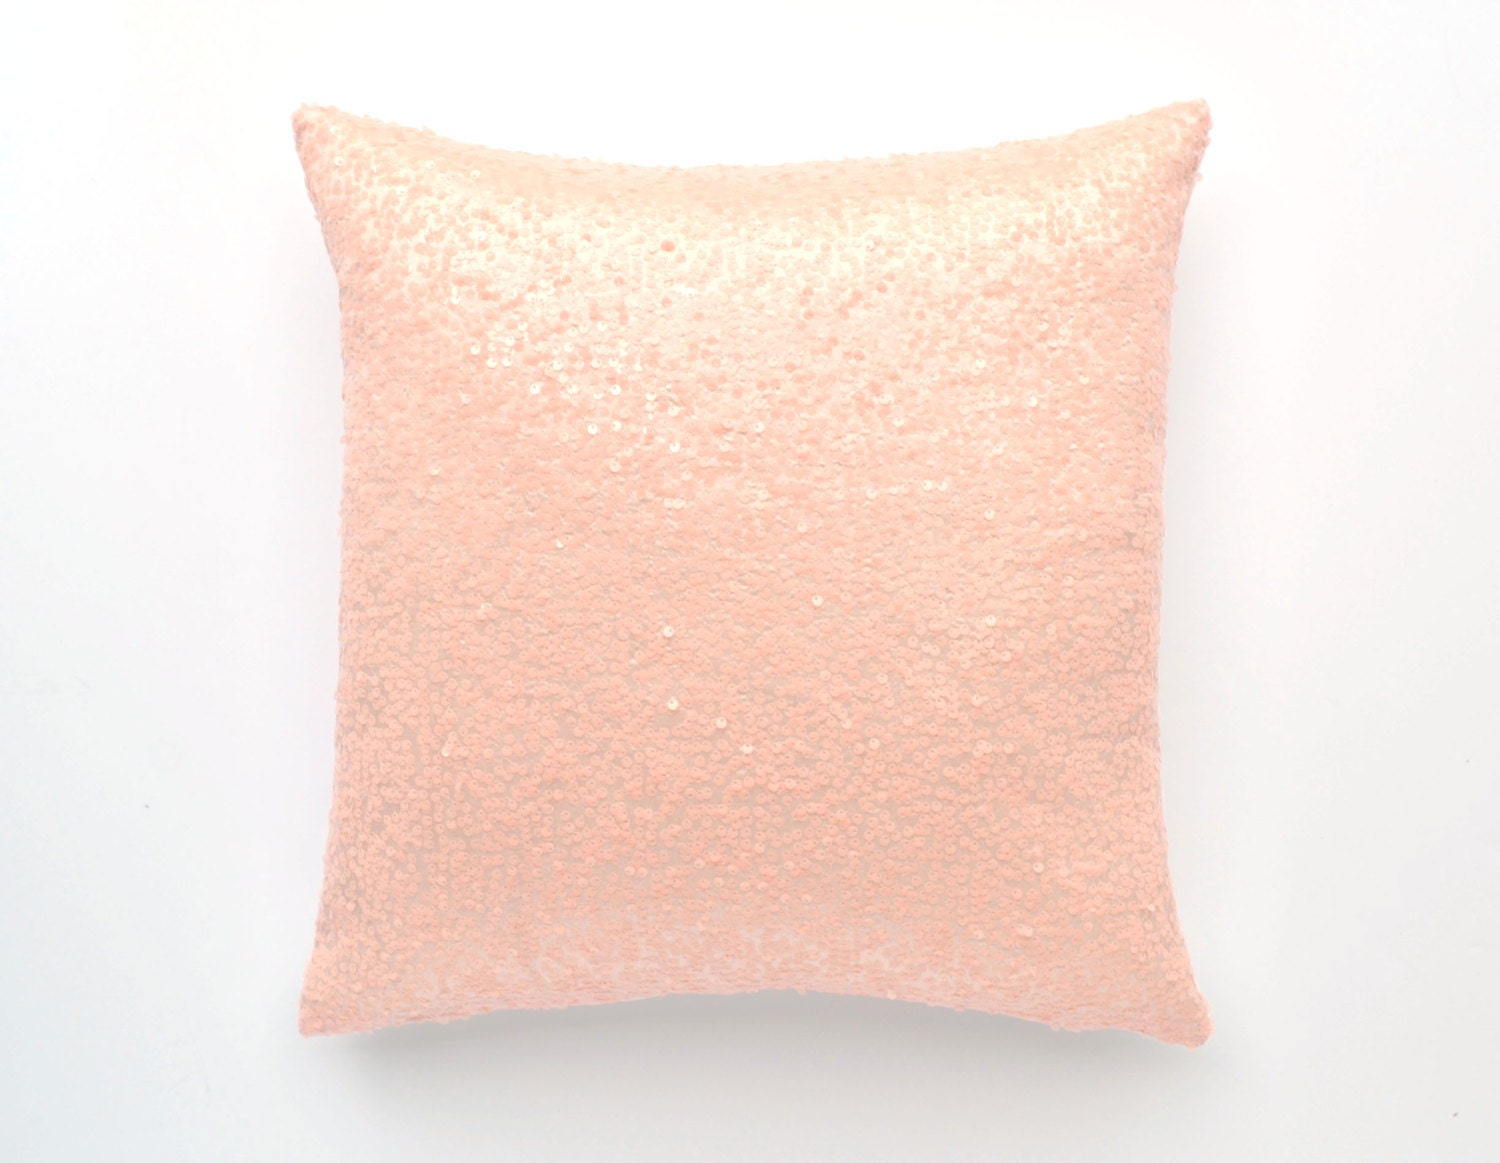 Pink Sequin Decorative Pillows : 20 x 20 Sequin Pillow Cover - Baby Pink Taffeta - Decorative Pillow, Throw Pillow, Sparkle ...